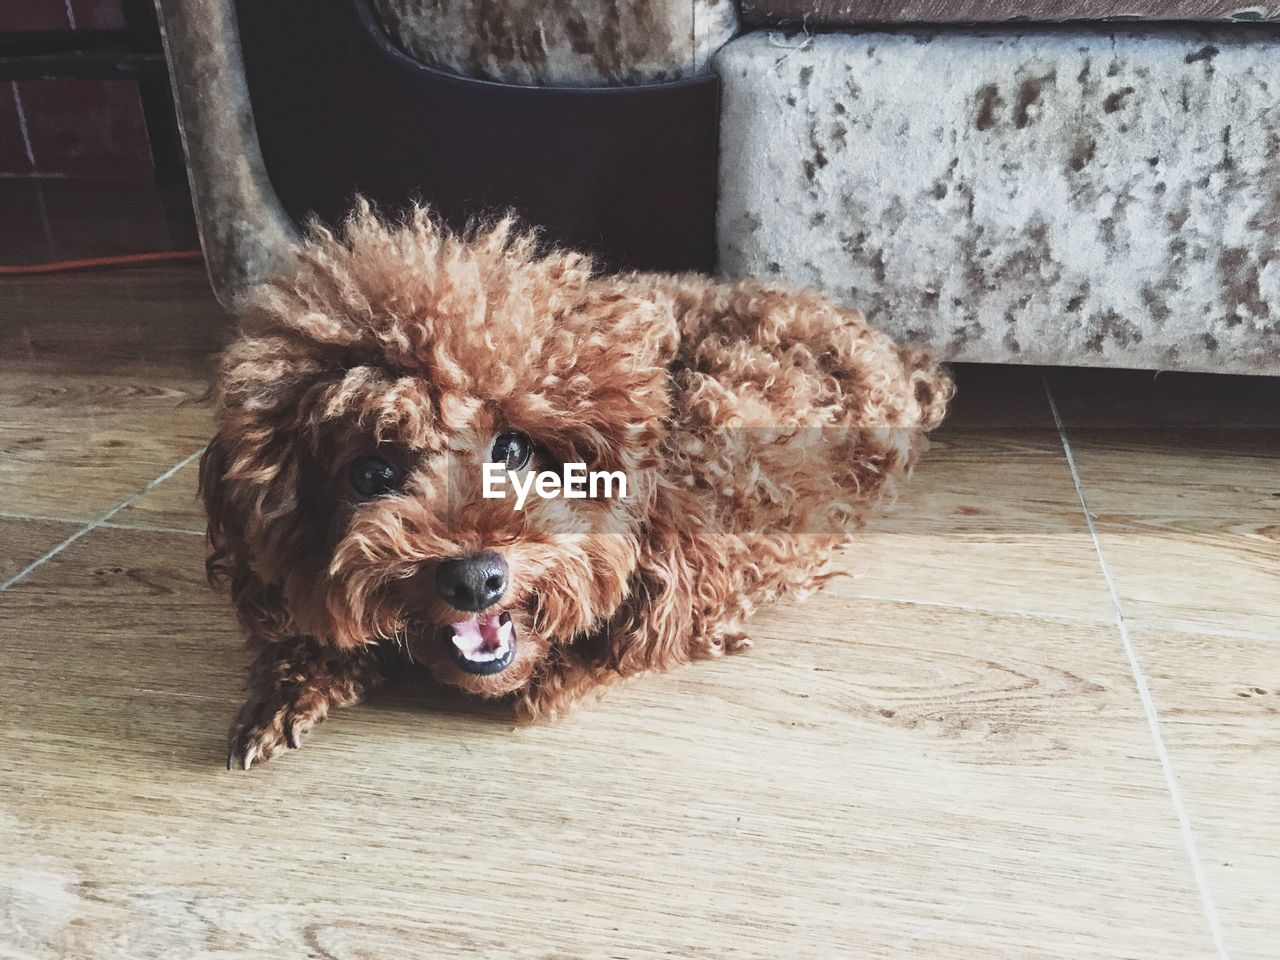 domestic, pets, dog, canine, domestic animals, one animal, mammal, animal themes, animal, flooring, vertebrate, portrait, indoors, home interior, looking at camera, no people, animal hair, brown, animal body part, hair, wood, tiled floor, small, animal head, mouth open